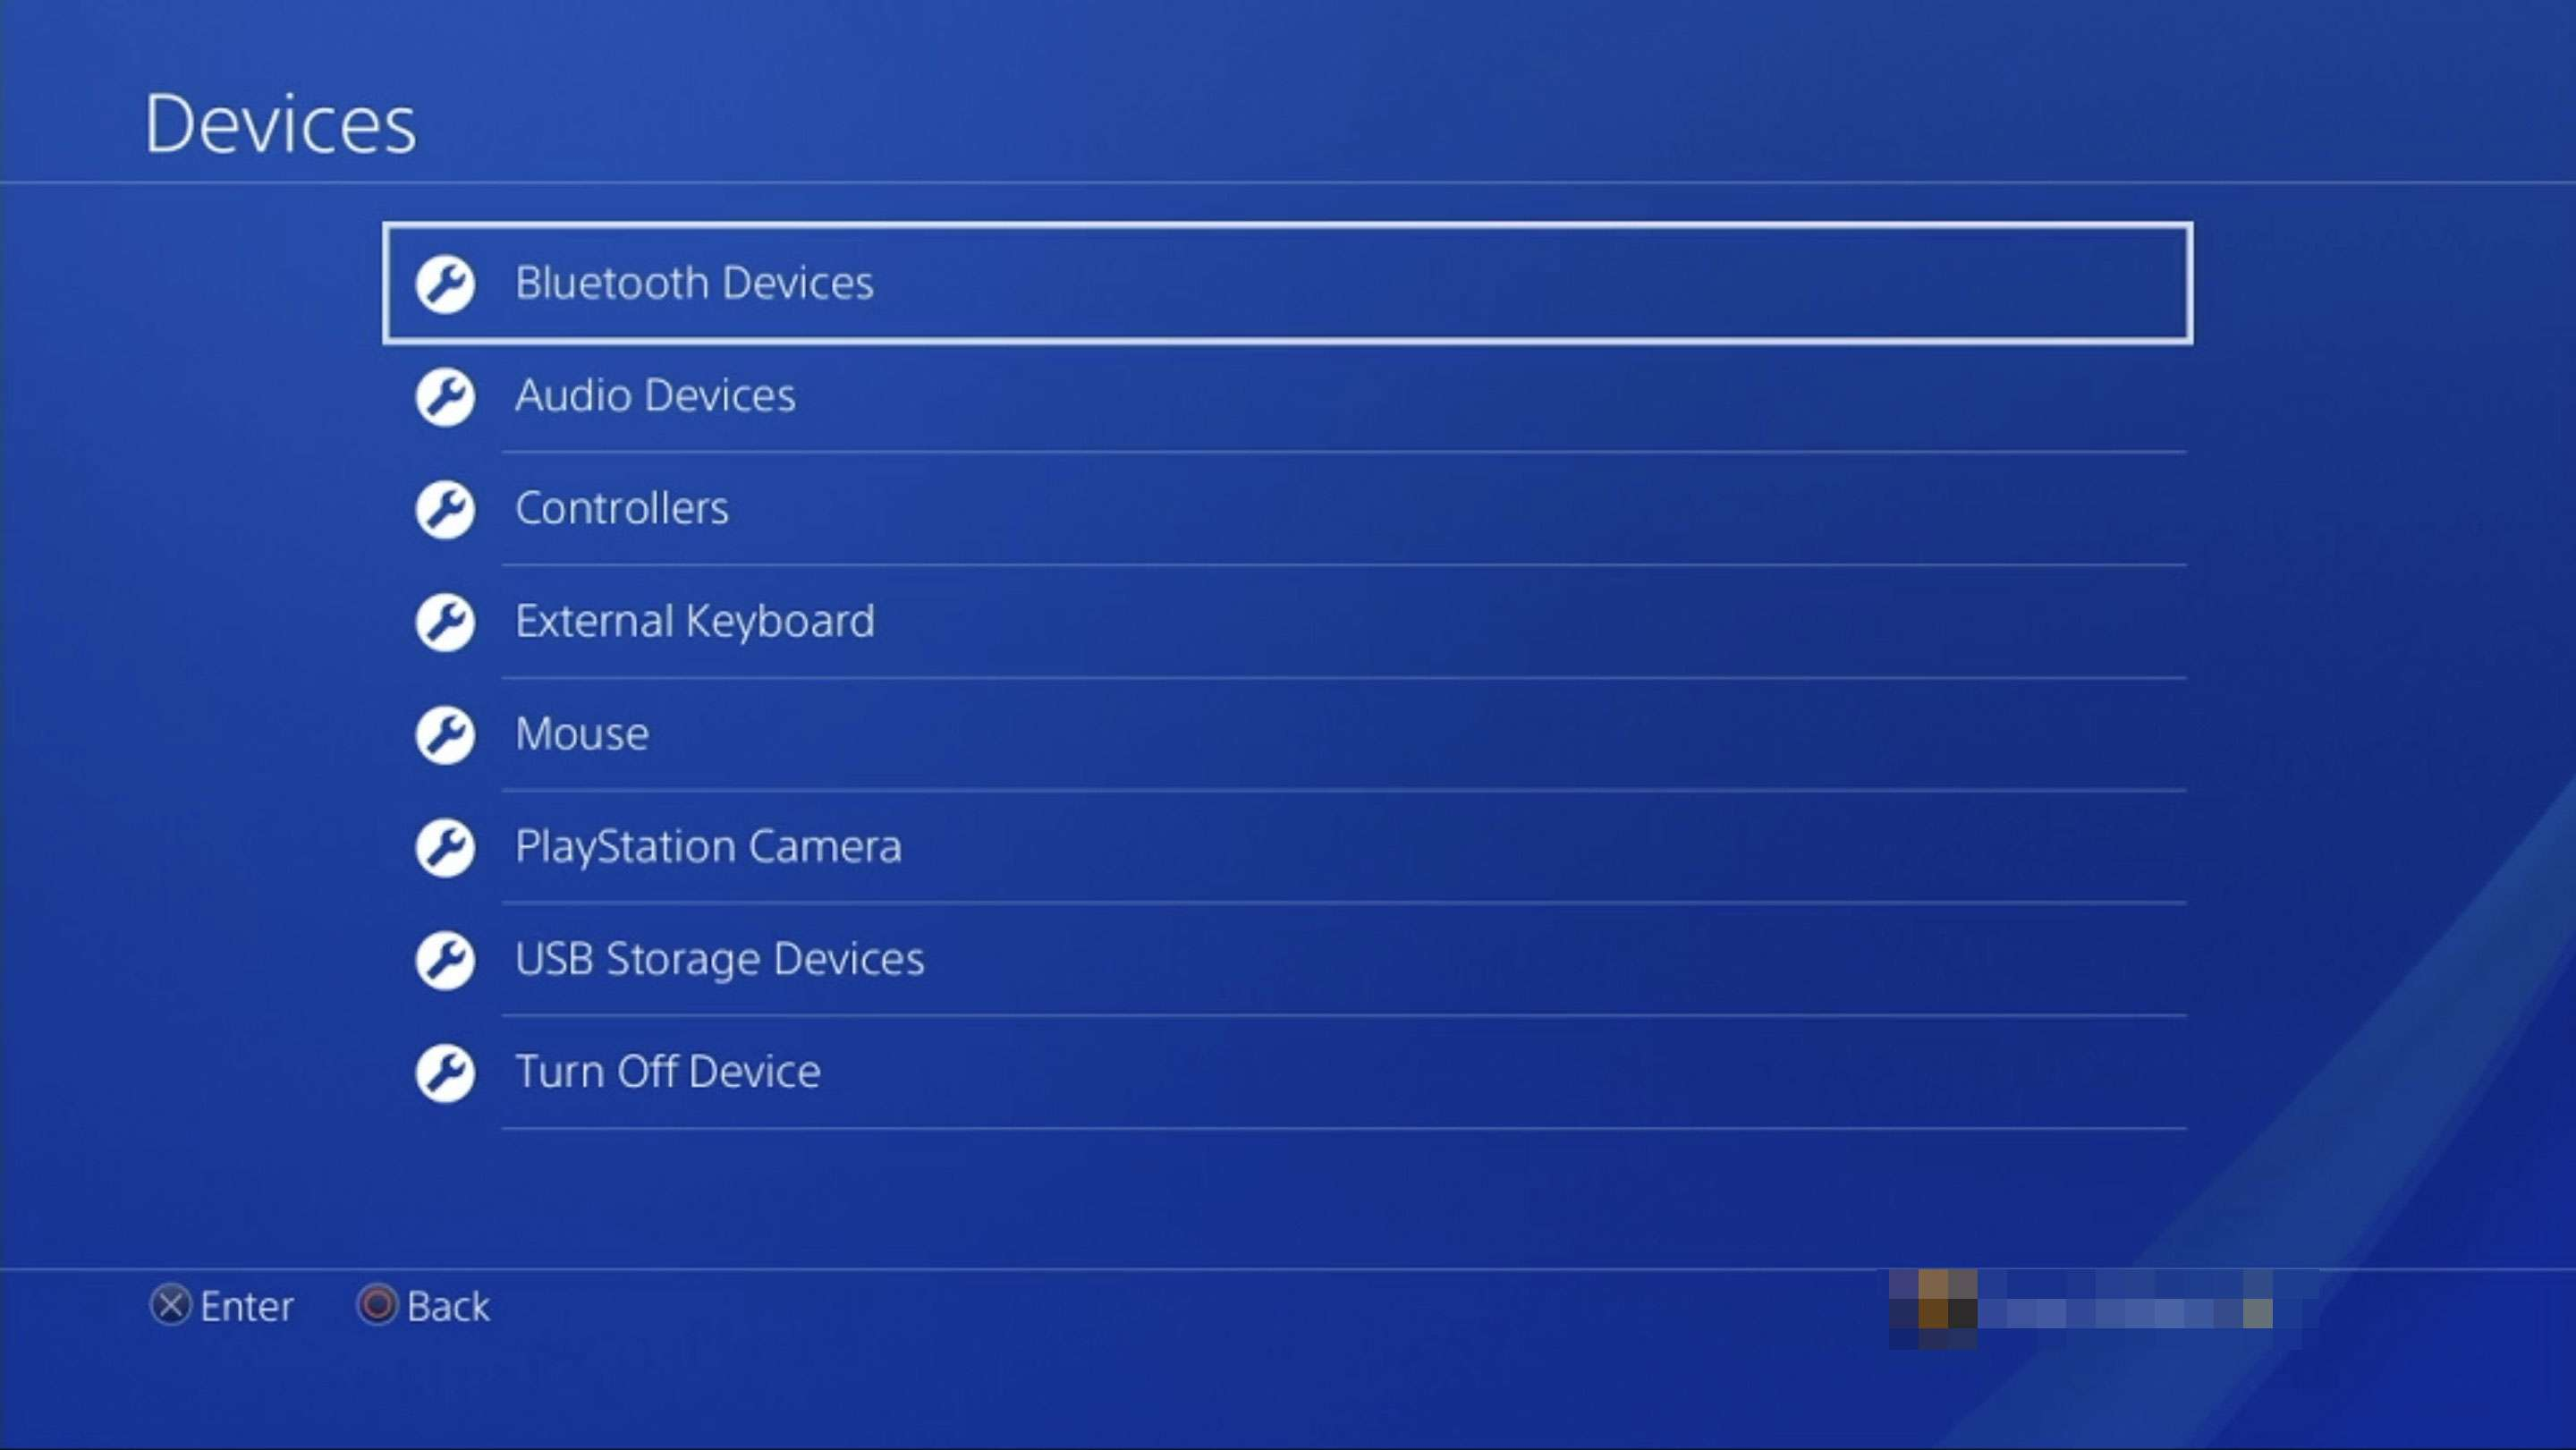 A screenshot of the PS4 Devices setting with the Bluetooth Devices option highlighted